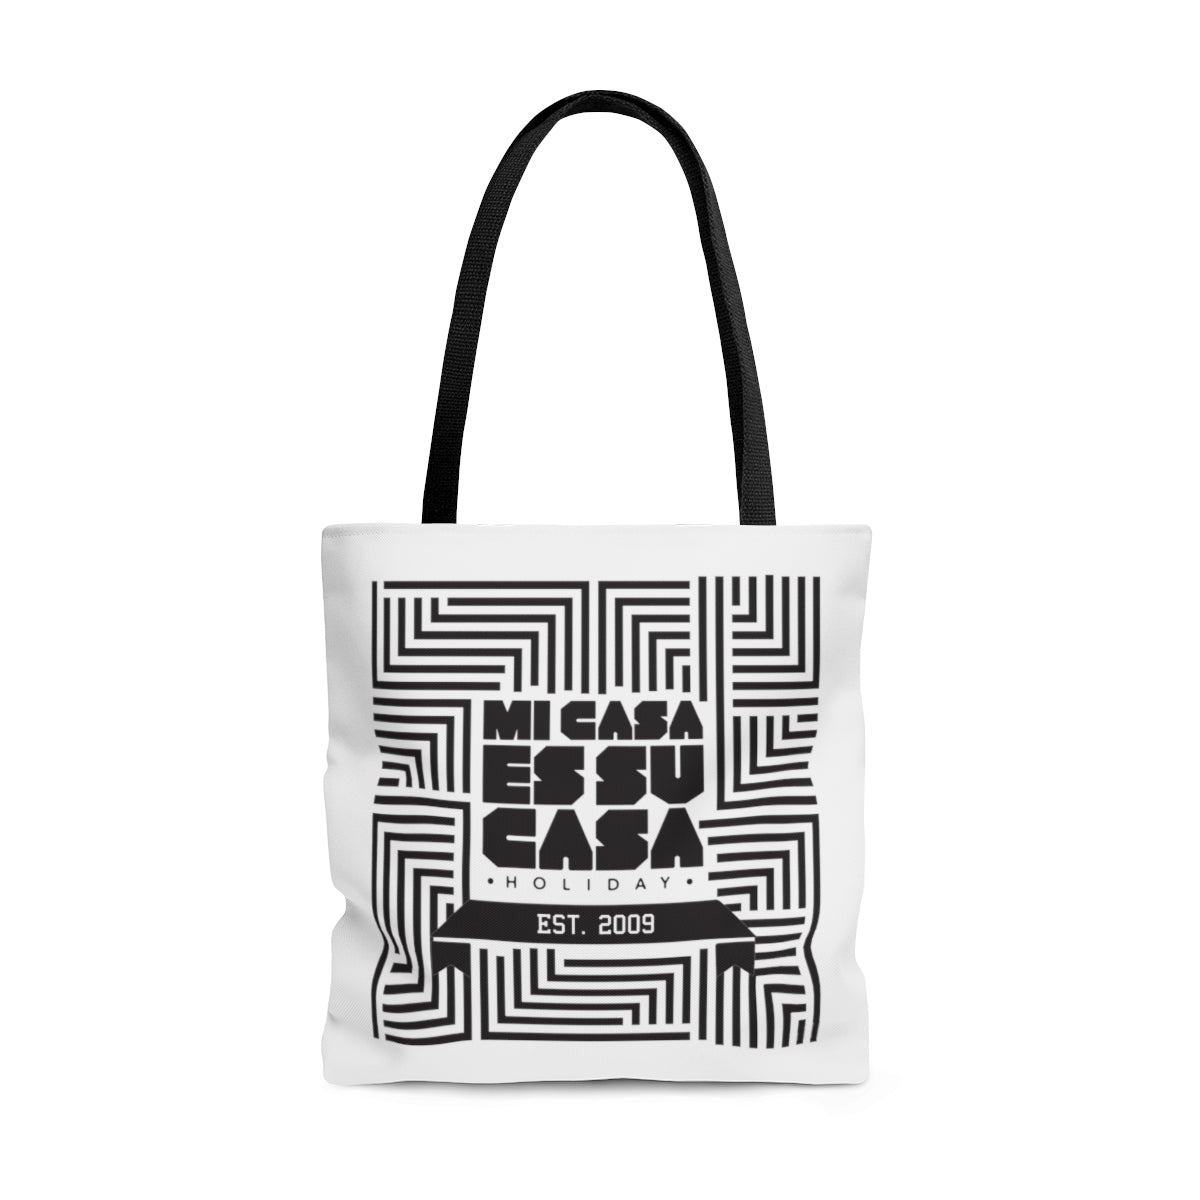 Mi Casa Holiday Est. 2009 Tote Bag